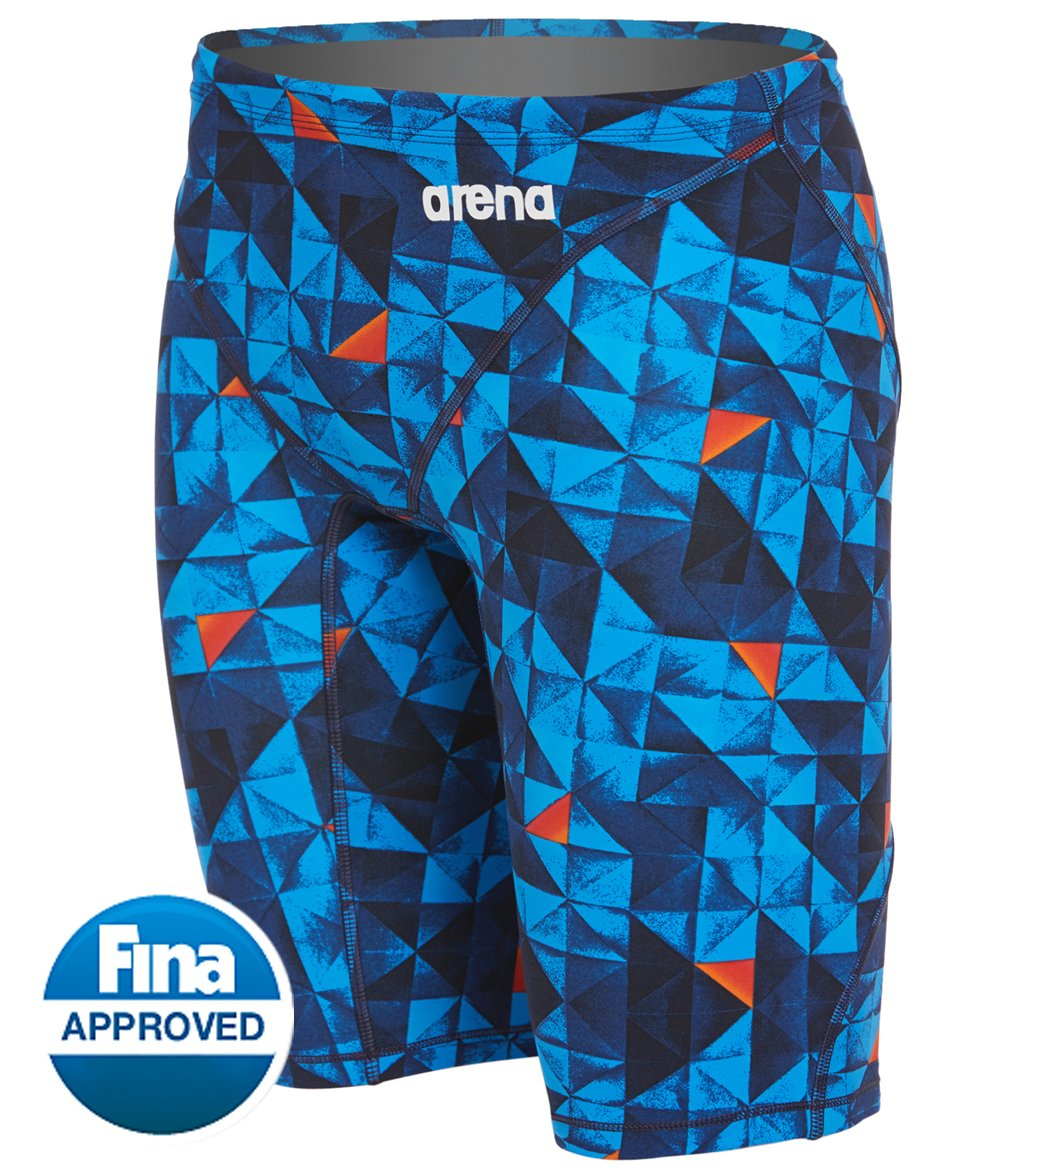 bcc0de8e ... Arena Men's Limited Edition Powerskin ST 2.0 Jammer Tech Suit Swimsuit.  Share